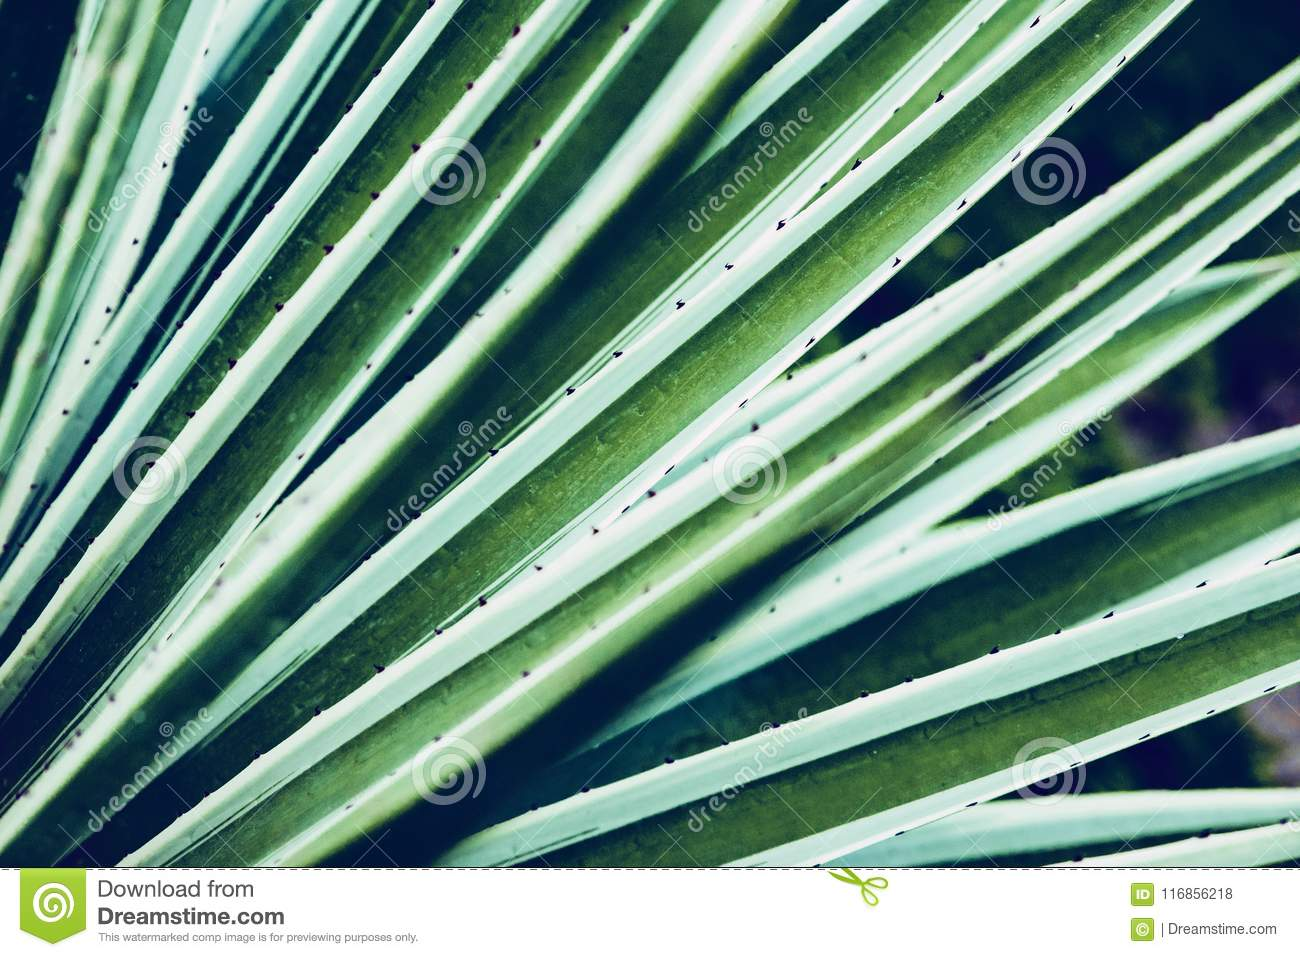 Cactus aloe vera closeup. Natural floral background. The concept of natural geometry